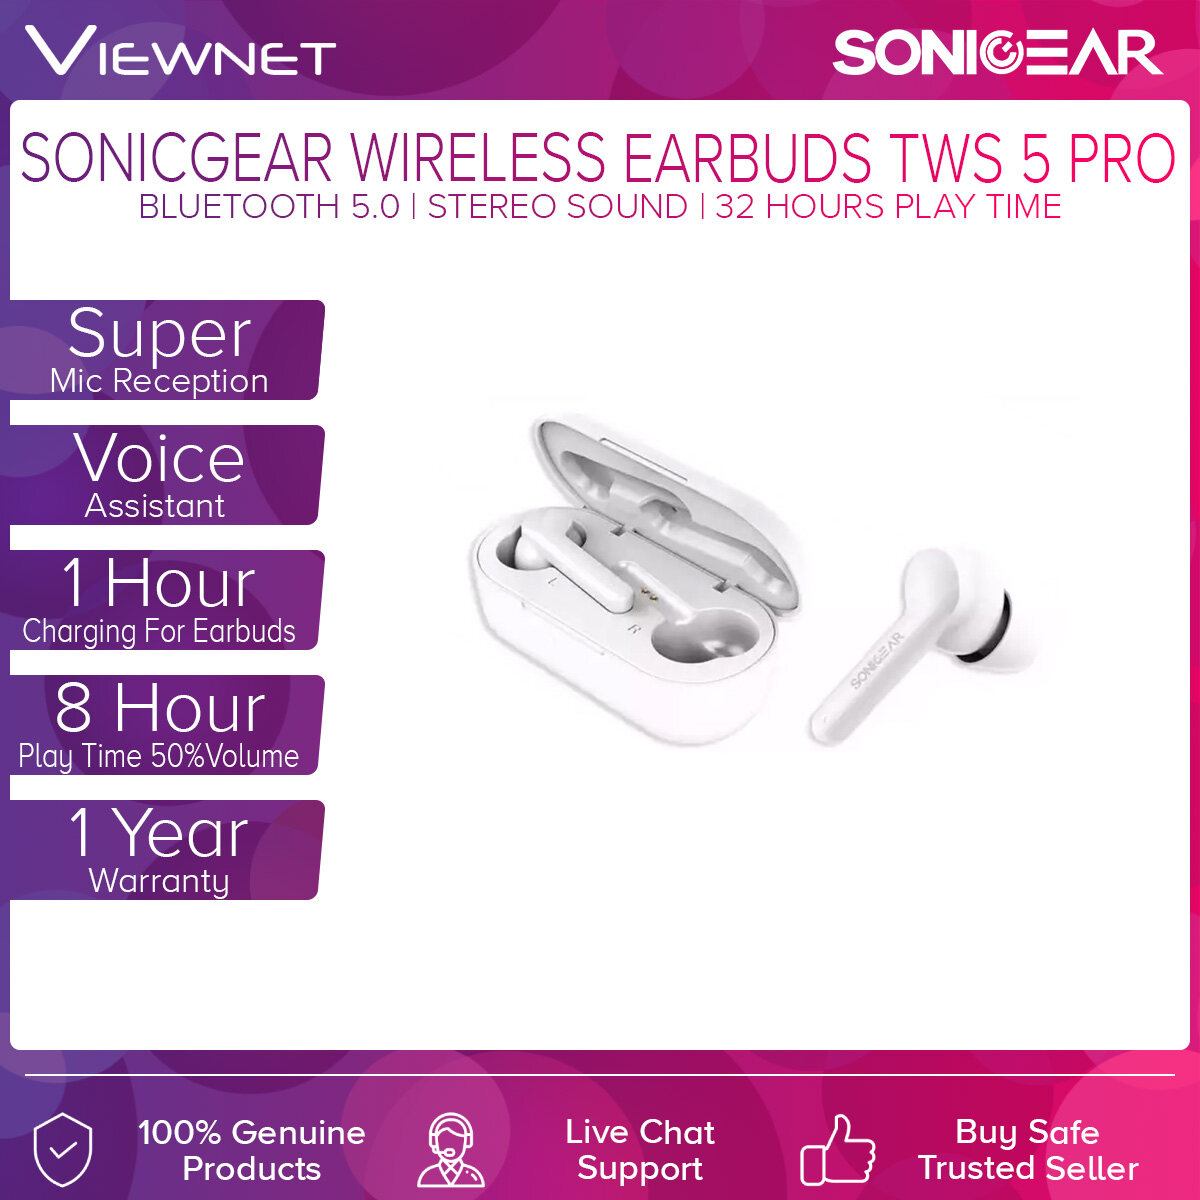 SonicGear Wireless Earbuds TWS 5 Stereo Sound with Bluetooth 5.0, Super Mic Reception, Ergonomic In Ear Design, Voice Assistant, 8 Hour Music Play Time (50% Volume) + 24 Hour for Battery Case